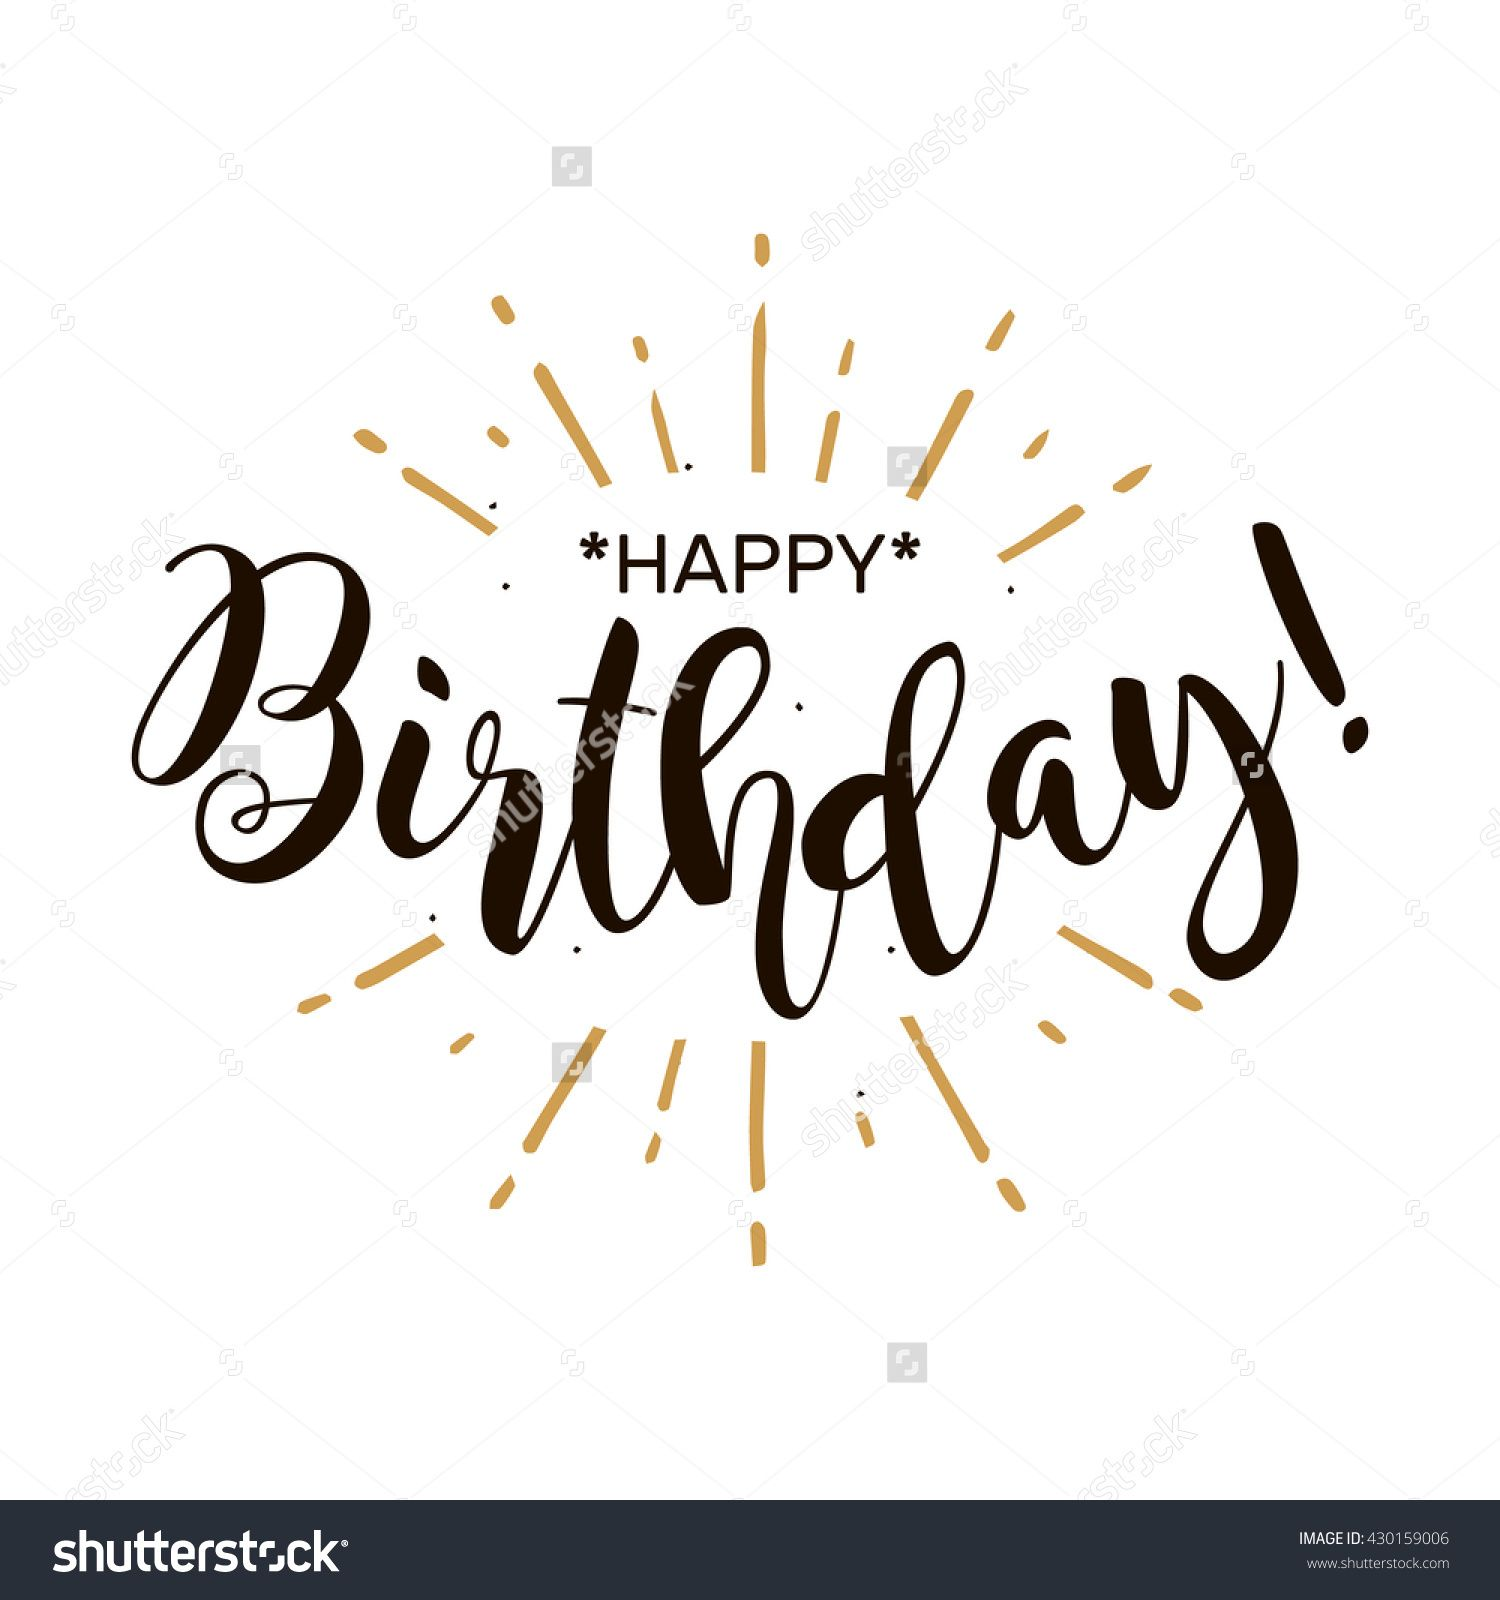 Happy Birthday Beautiful Greeting Card Poster With